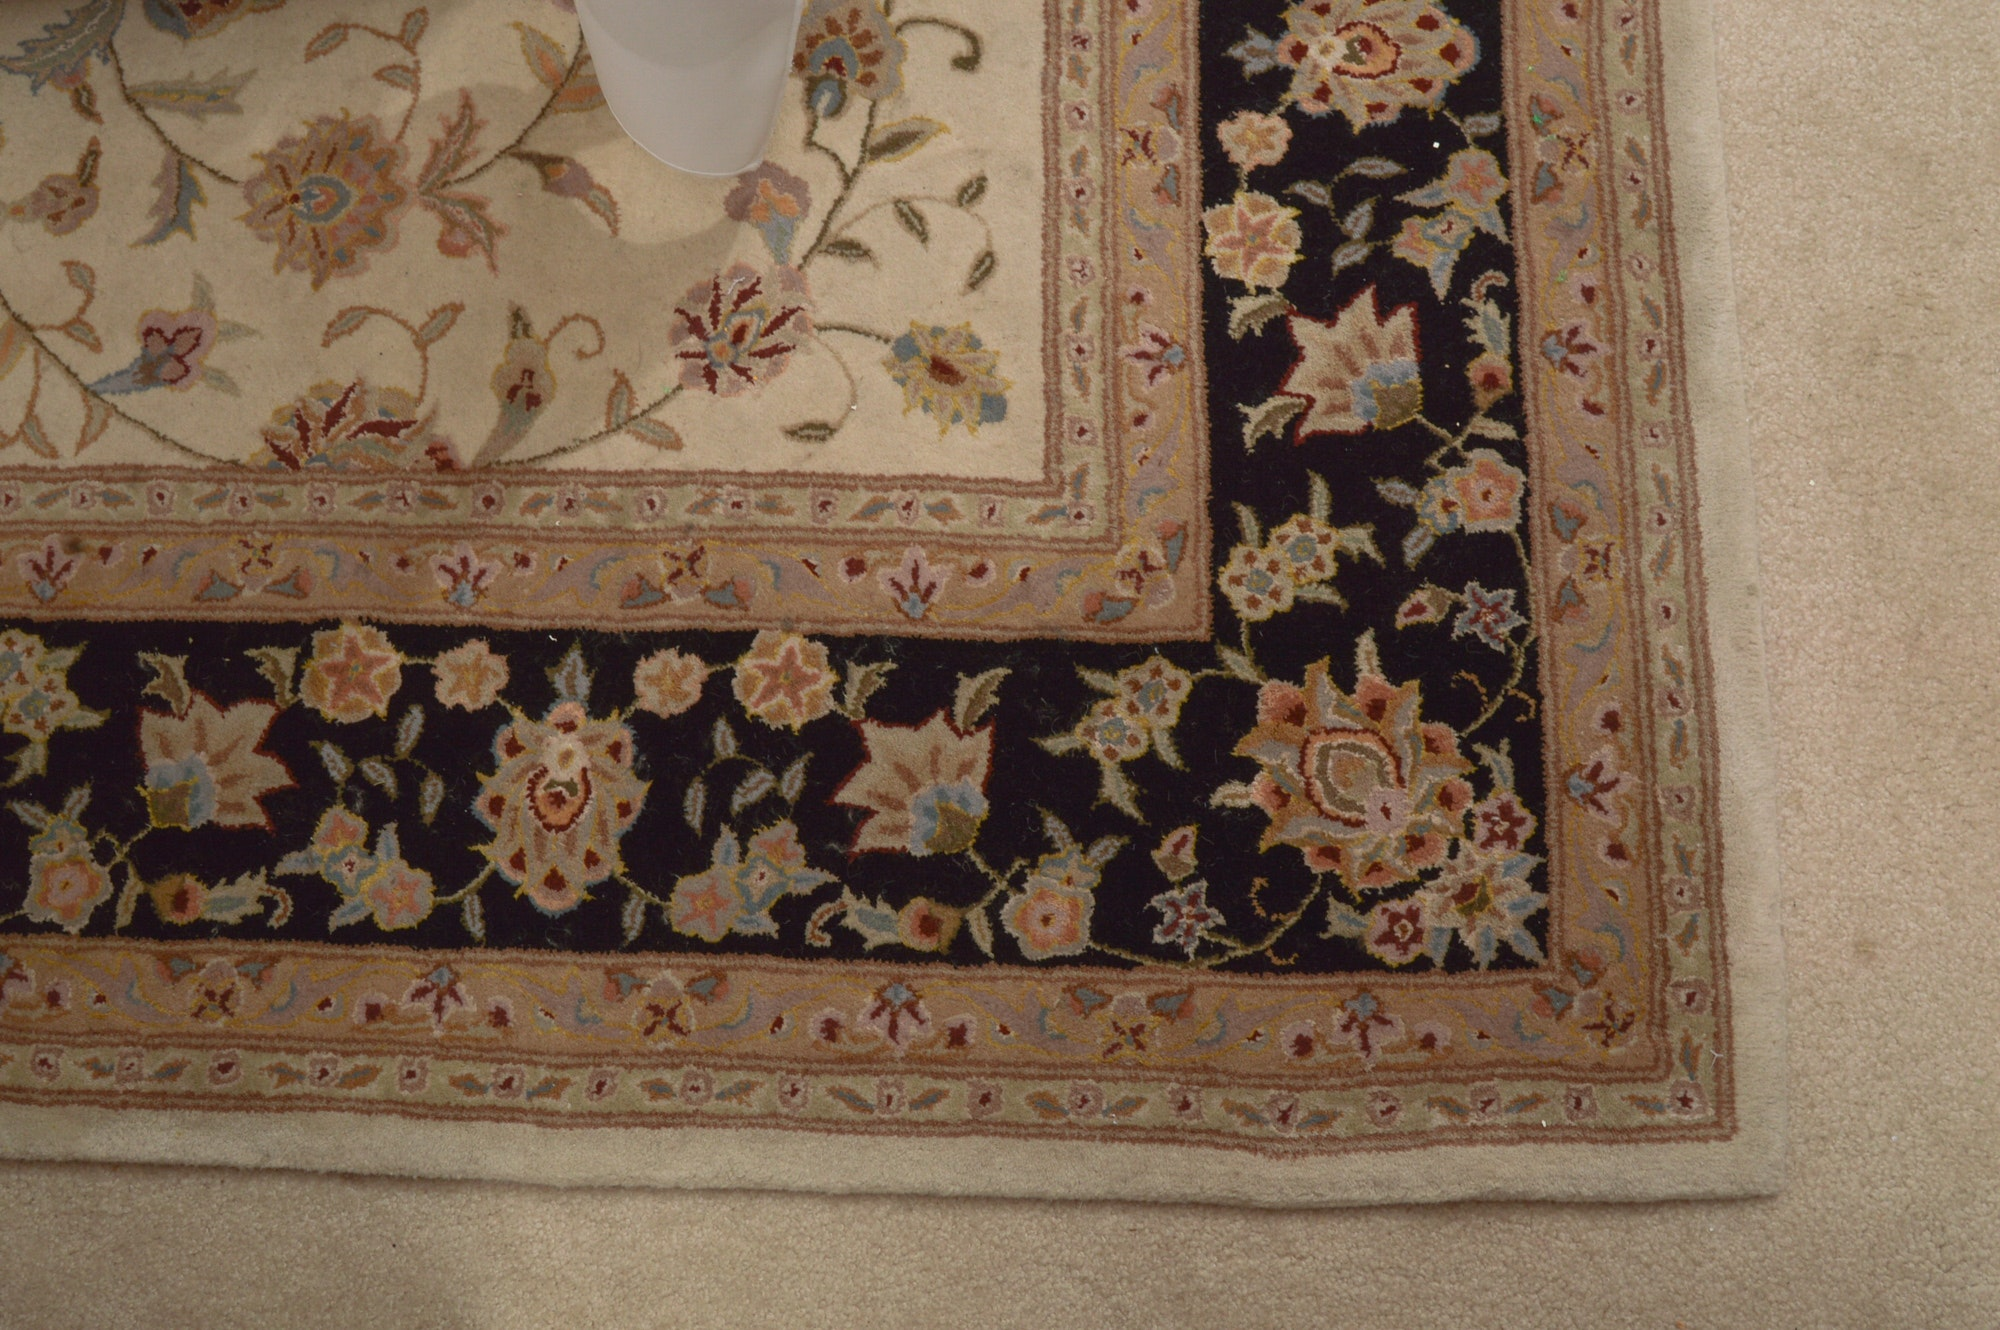 Hand-Tufted Persian Style Rug